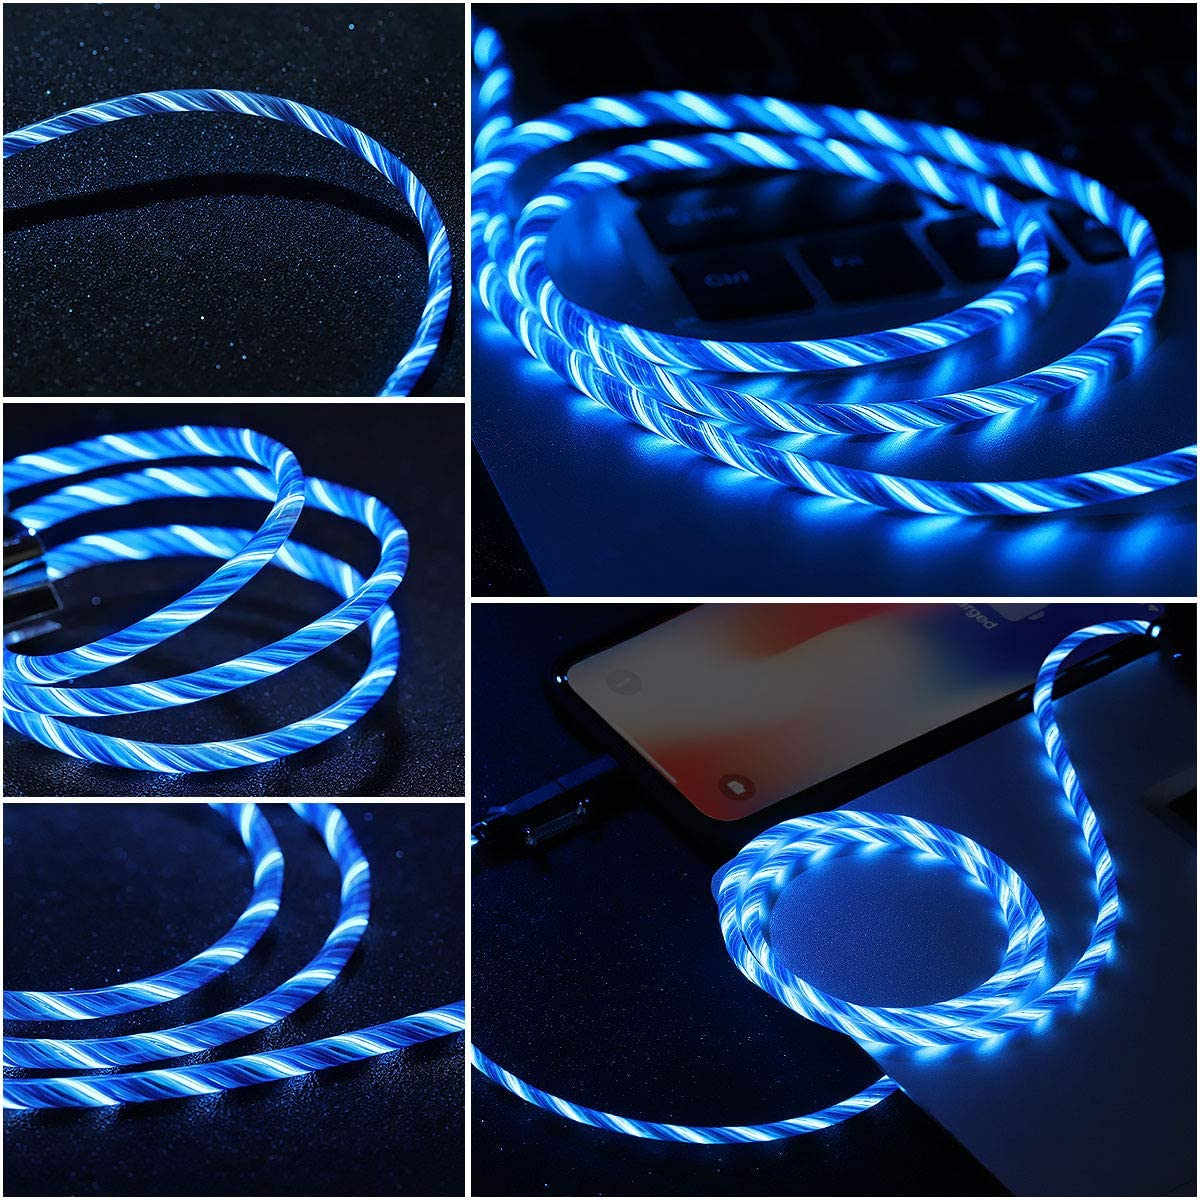 Apple MFi Certified Led iPhone Charger Cable, 2-in-1 Led Lightning Cable with 360 & Flowing Light ,3.3 ft (Blue)